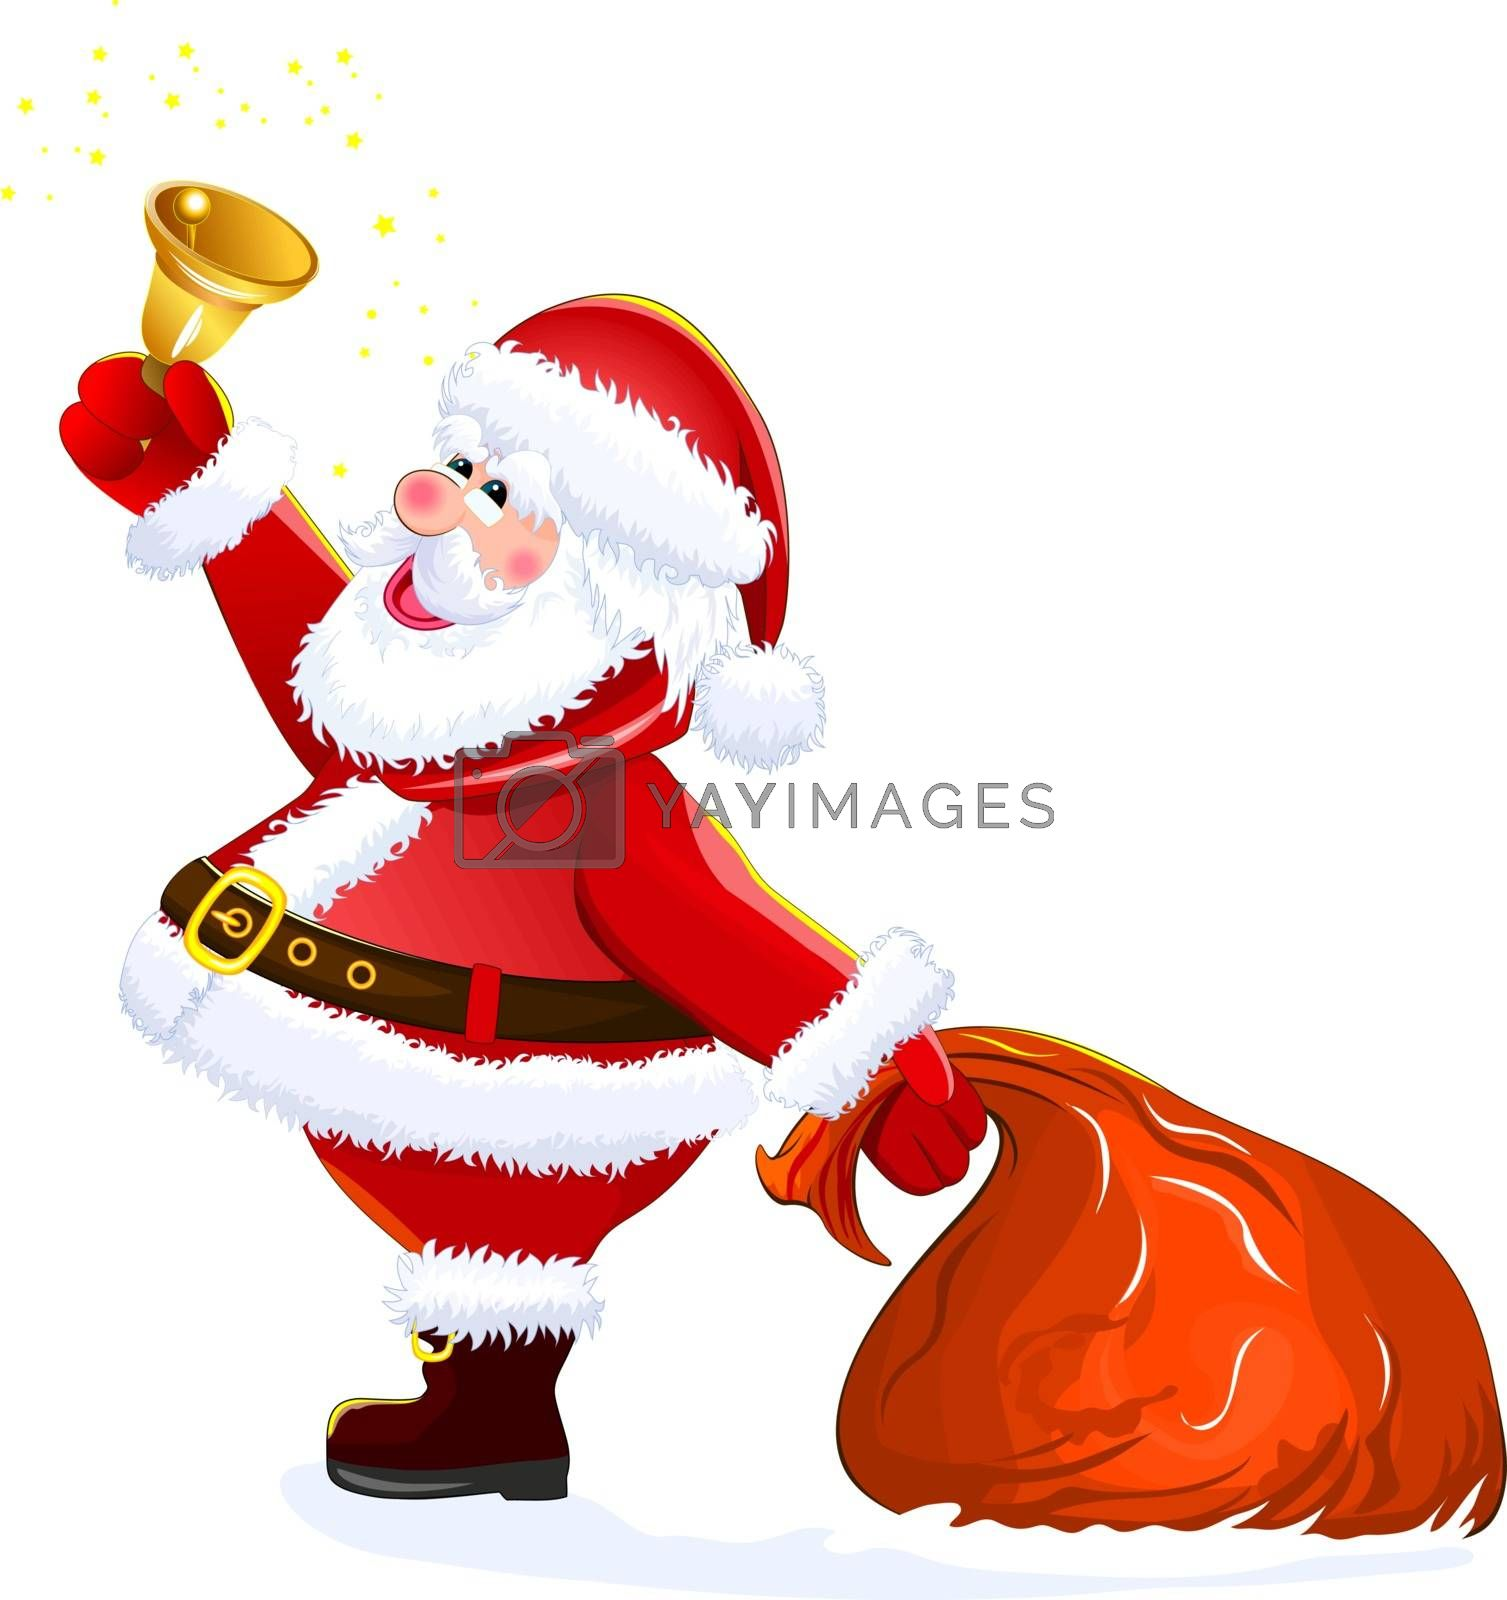 Santa with sack and bell by liolle